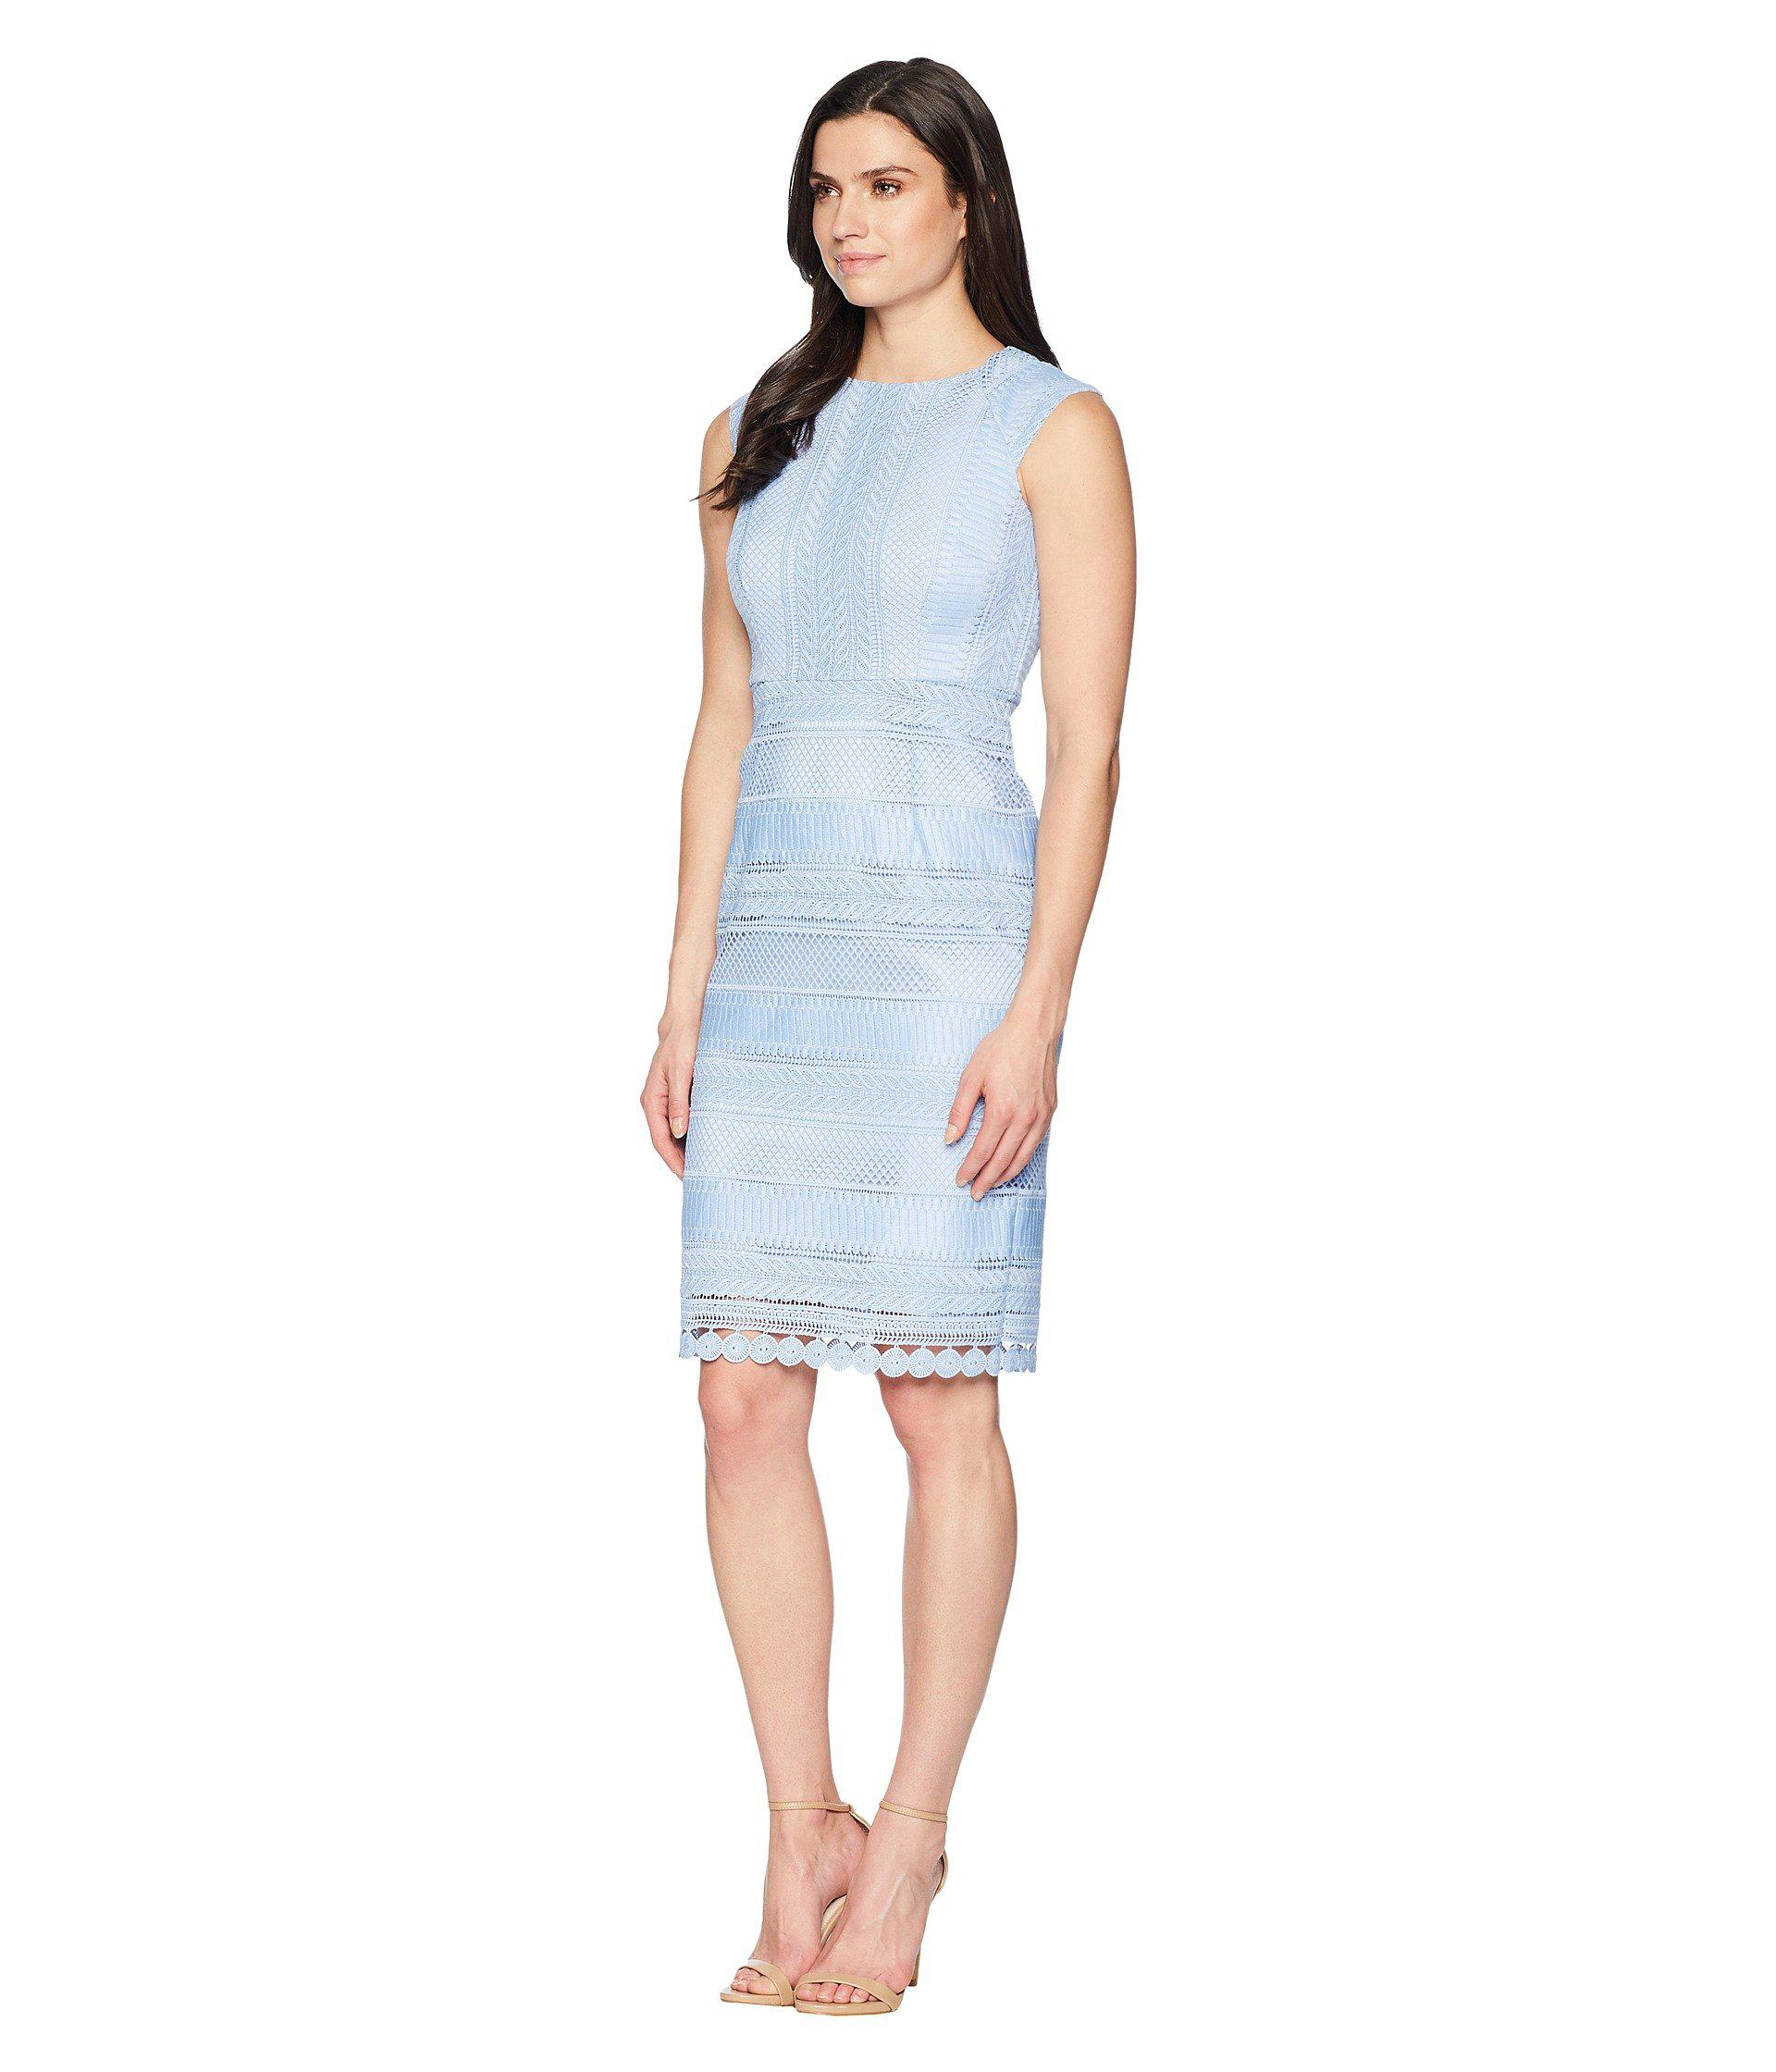 1831c2c8 Lyst - Tahari Fit To Body Chemical Lace Sheath Dress in Blue - Save 32%